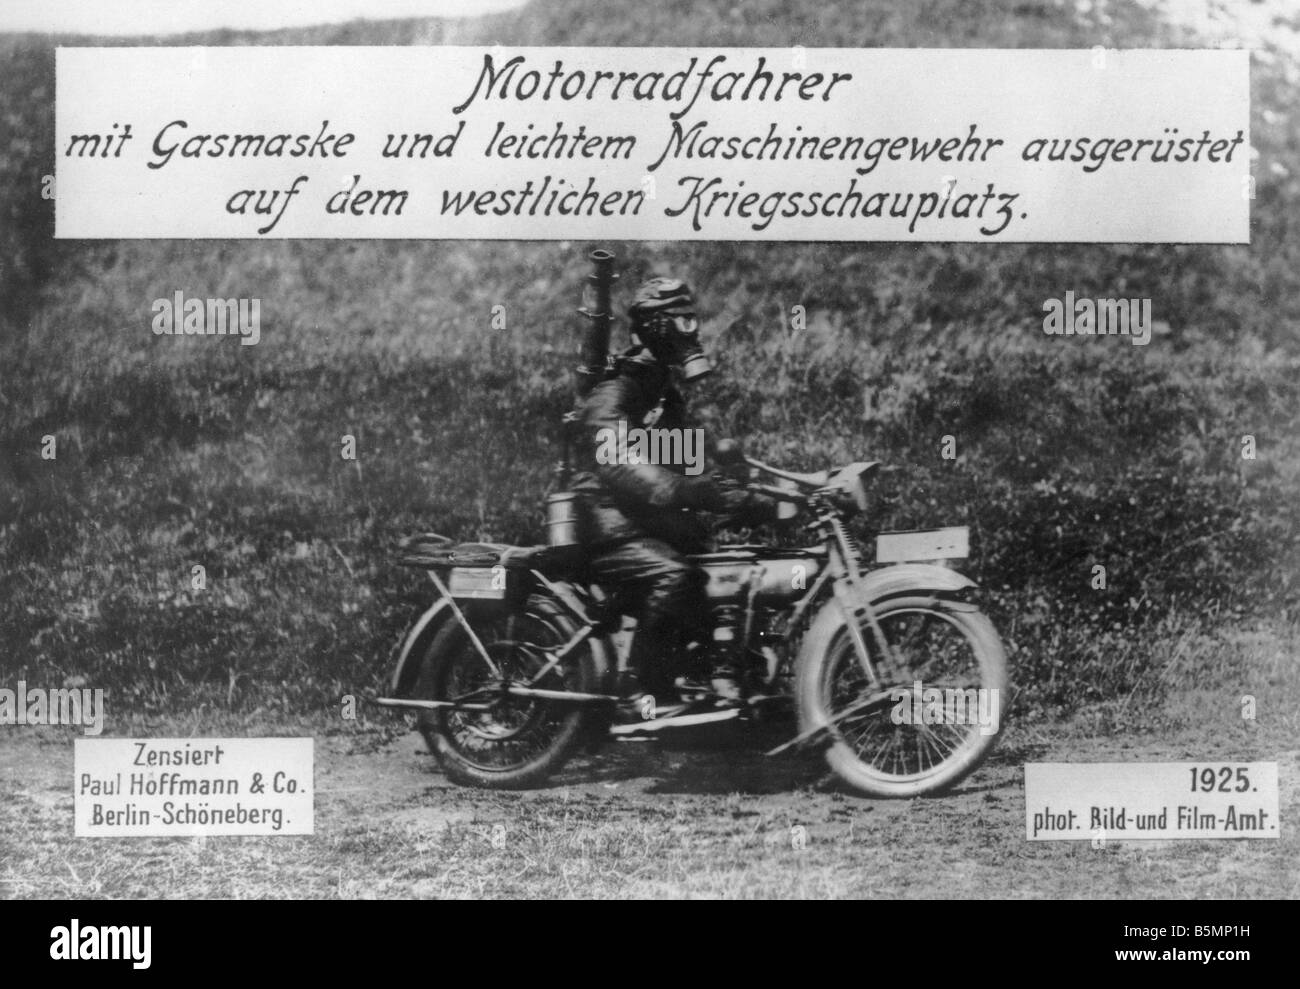 Motorcyclist at the Western Front World War I 1914 18 Western Front Motorcyclist with gas mark and light machine - Stock Image